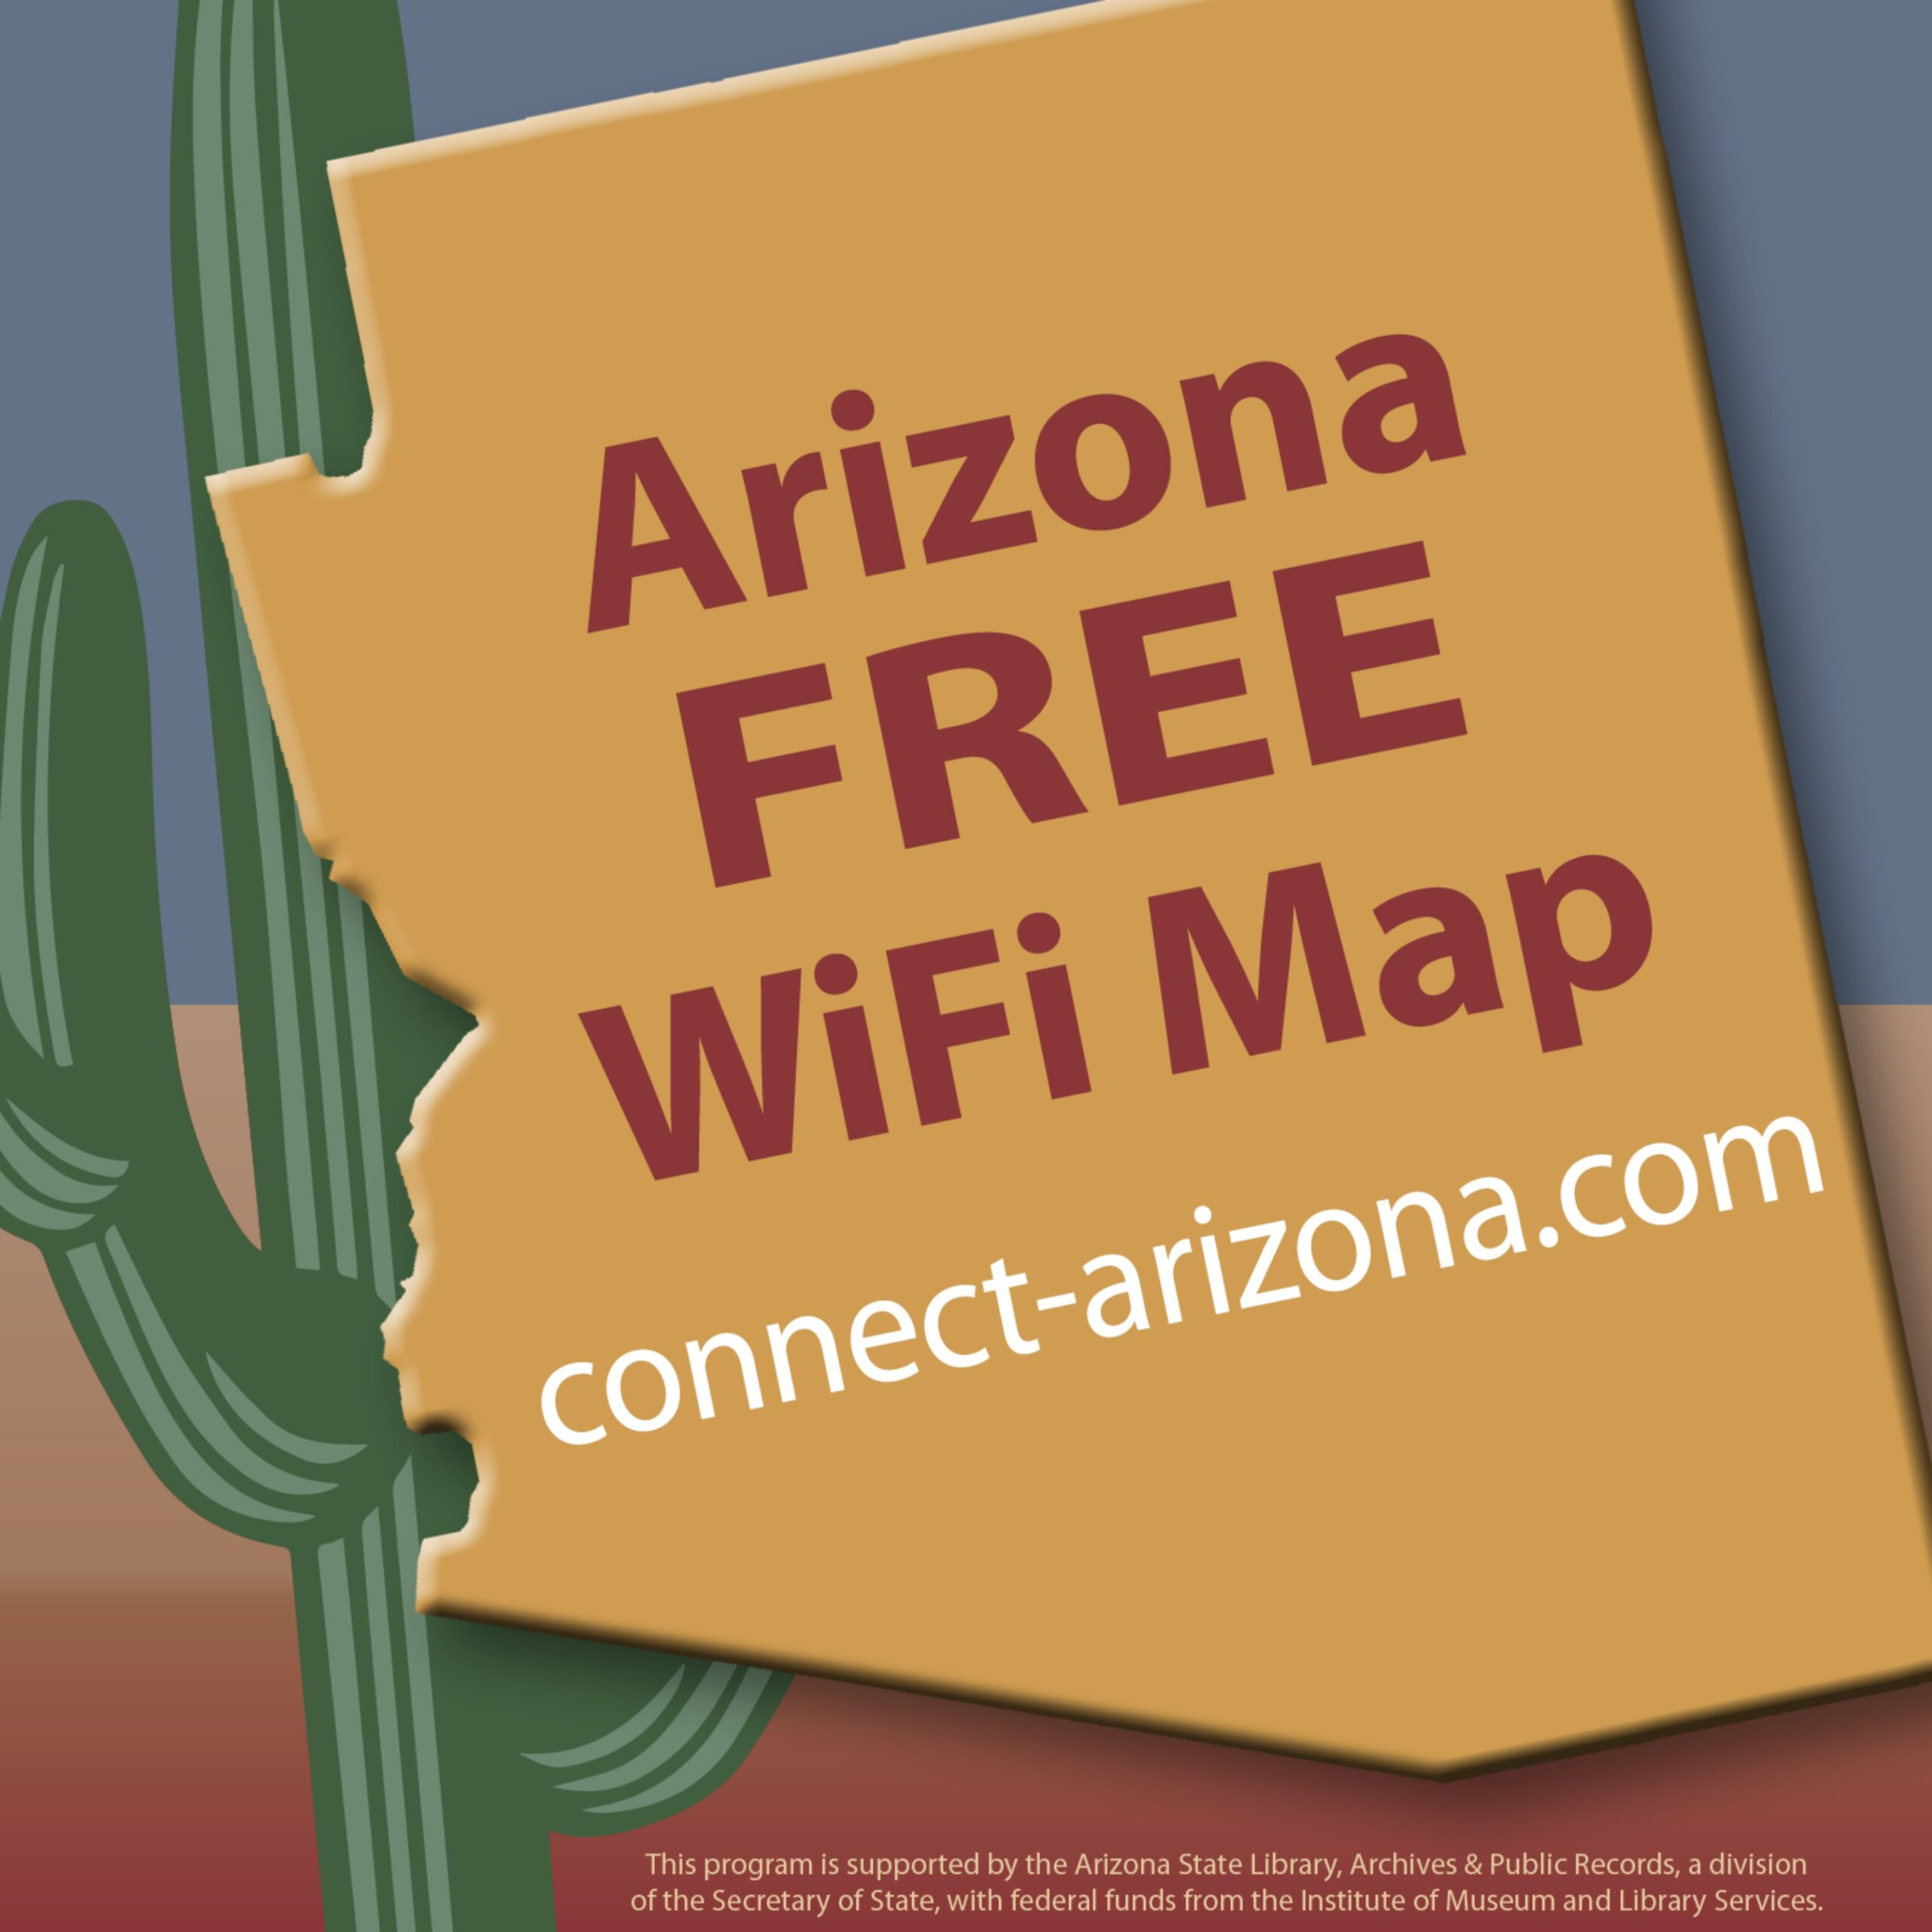 Connect-Arizona WiFi Map (1)